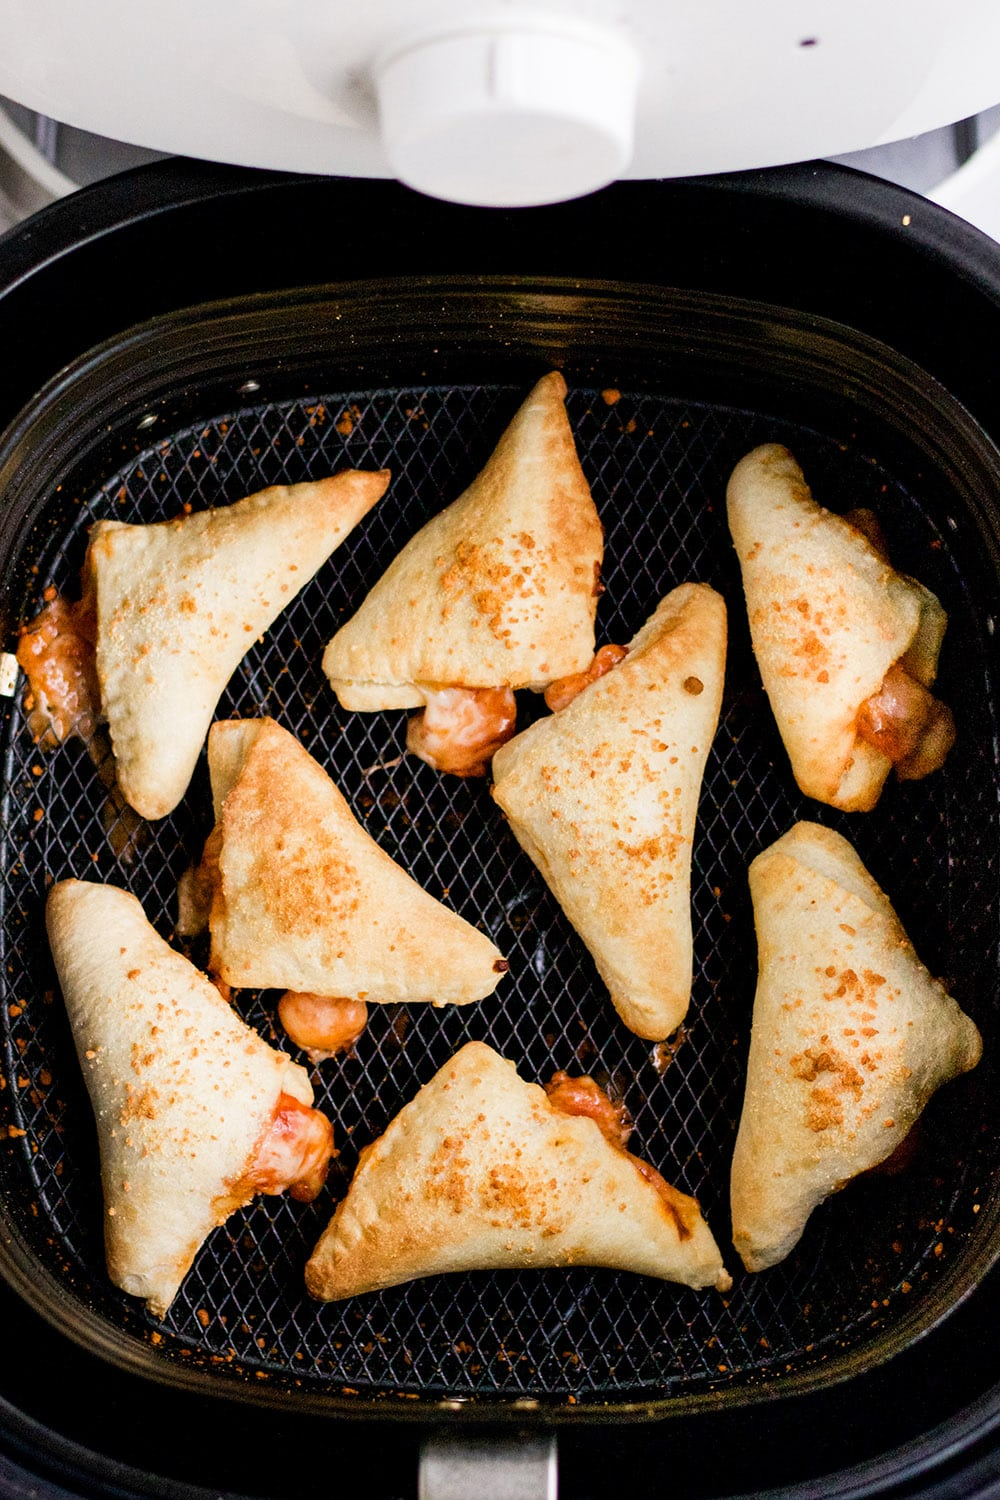 cooked pizza rolls in an air fryer